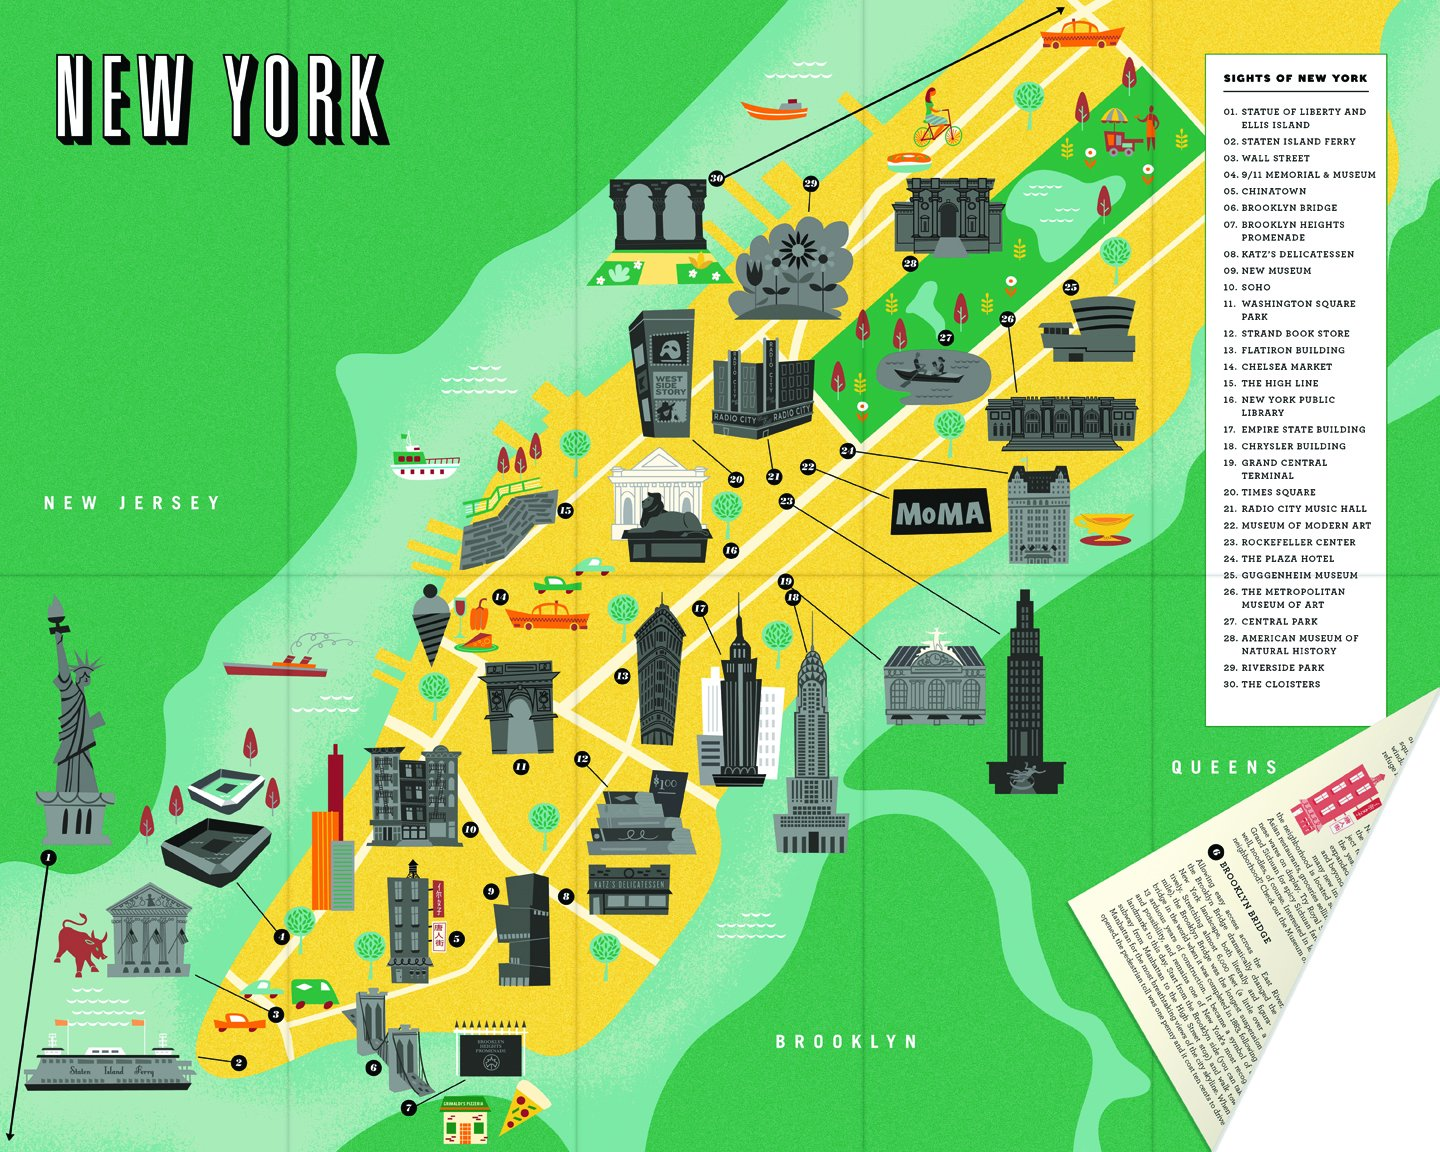 City Scratchoff Map New York A SightSeeing Scavenger Hunt - Ney york map